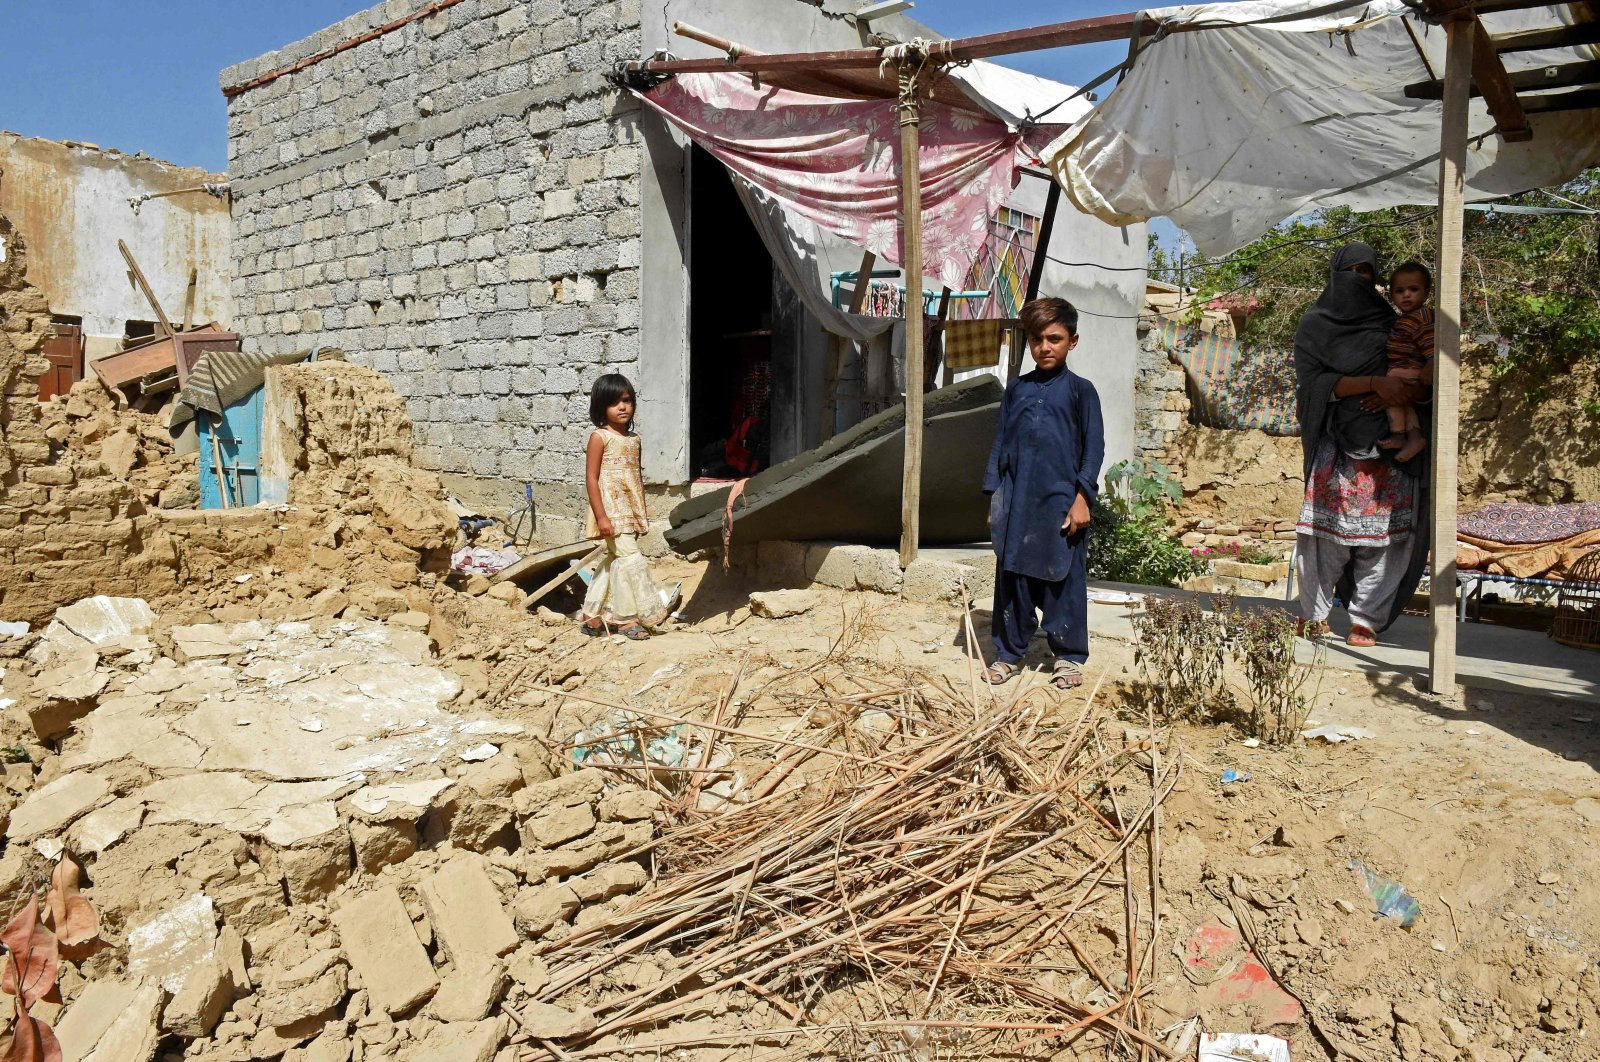 A woman and her children stand beside their collapsed mudbrick house following an earthquake in the remote mountainous district of Harnai early on Oct. 7, 2021, southwestern Pakistan. (AFP Photo)